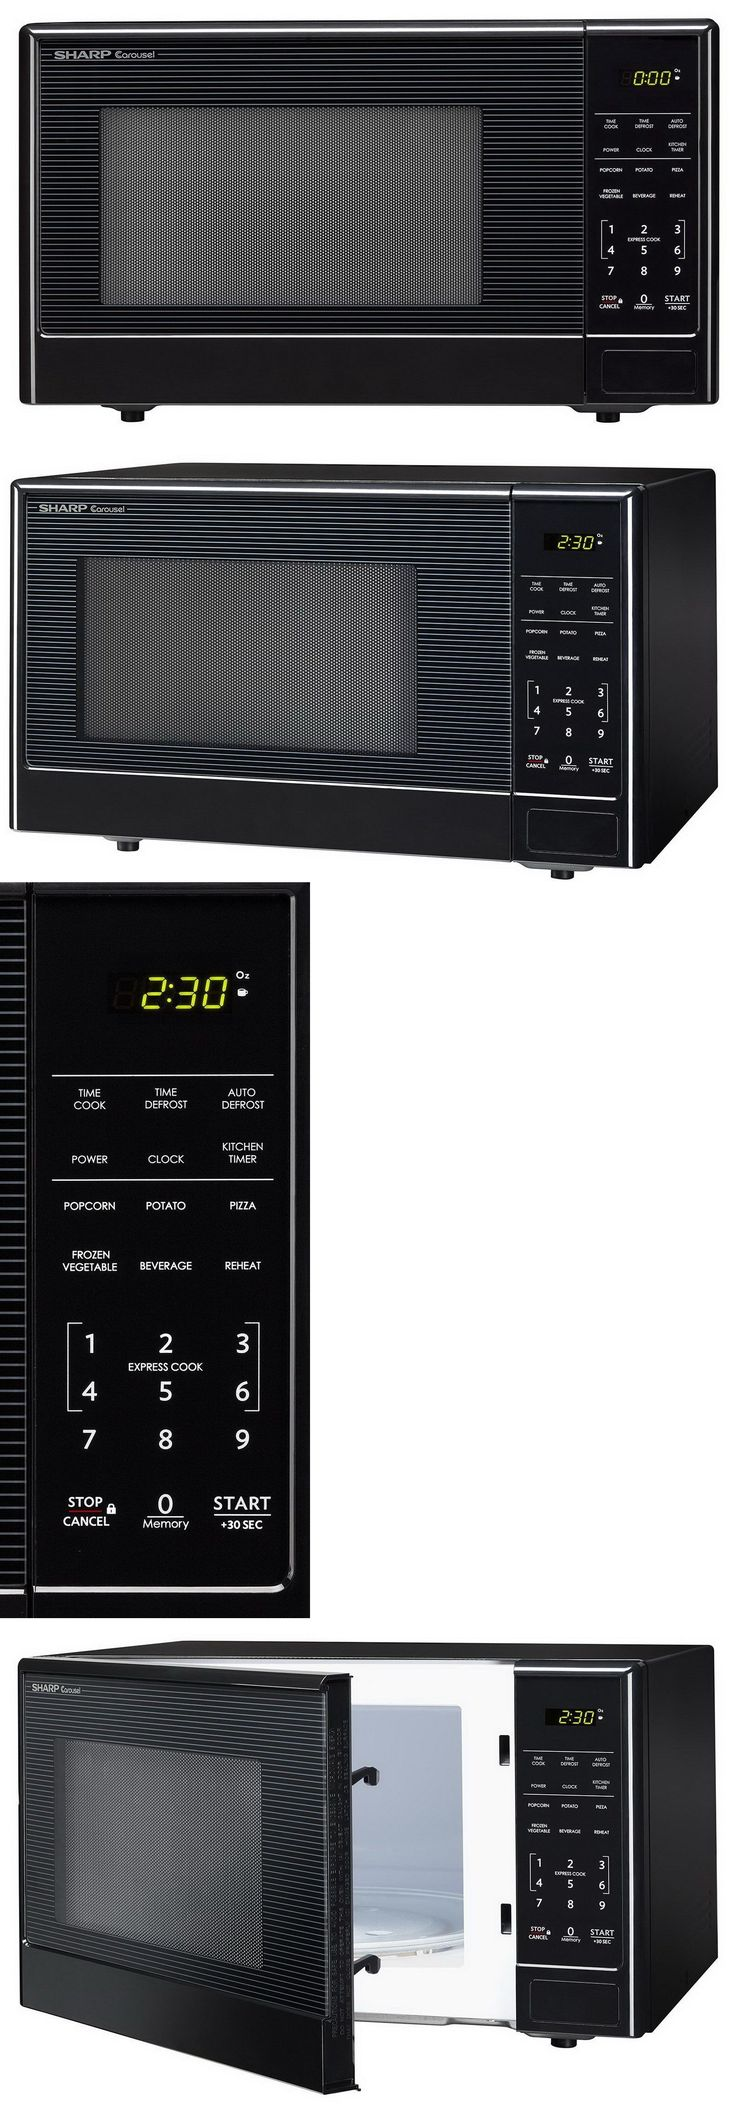 Major Appliances: New Sharp Microwave Oven Compact Stainless Steel Countertop 1.1 Cu Ft BUY IT NOW ONLY: $79.89